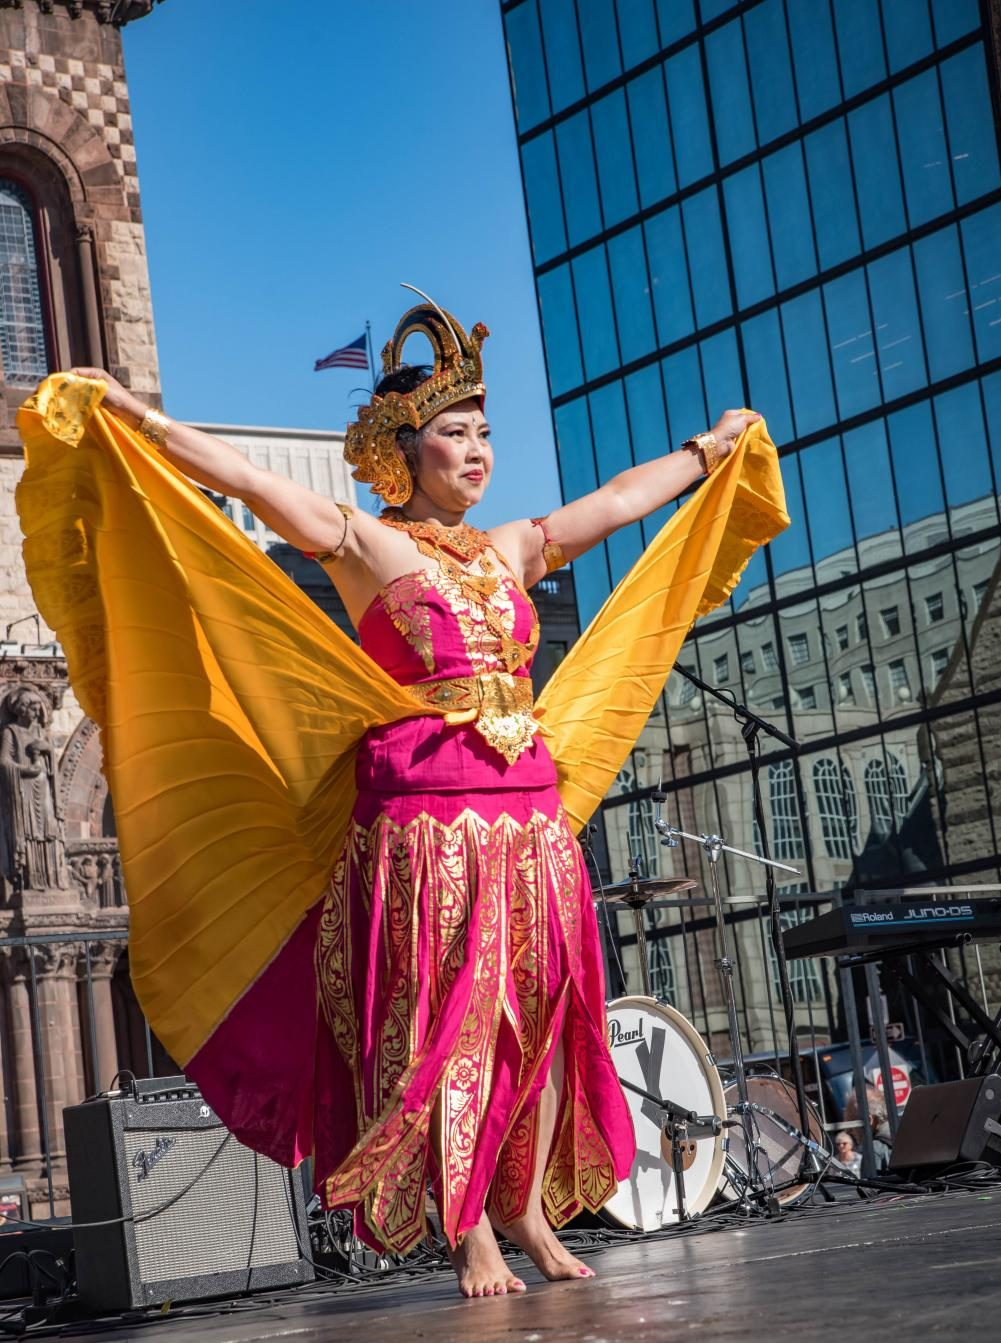 The 2019 New England Indonesian Festival featured traditional Indonesian dances among other theatrical performances.